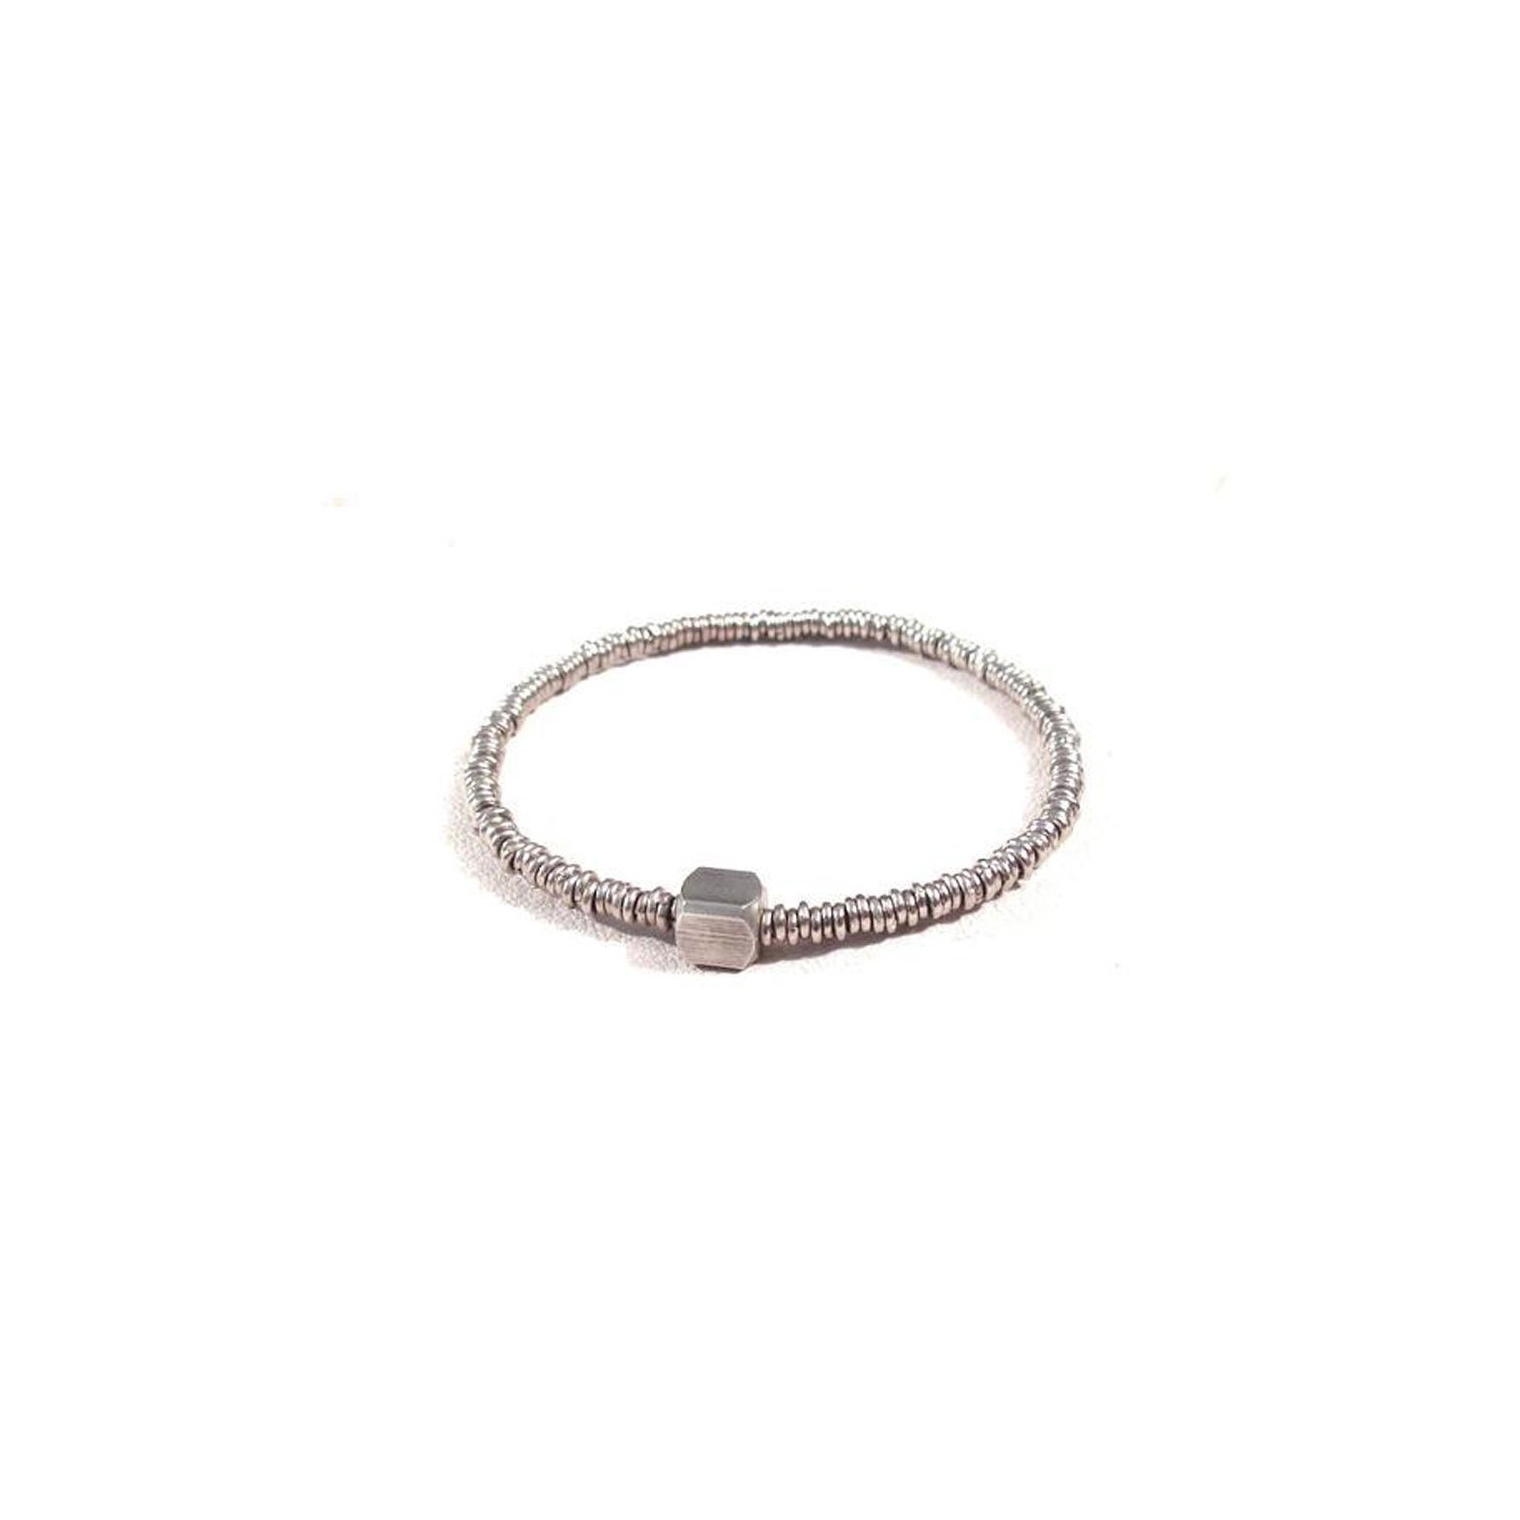 Handmade and sustainably crafted - $69 - Tough enough to survive the salt and effortlessly cool. This handcrafted bracelet featuring a white brass beads on a stretch band.Find it on CURIO